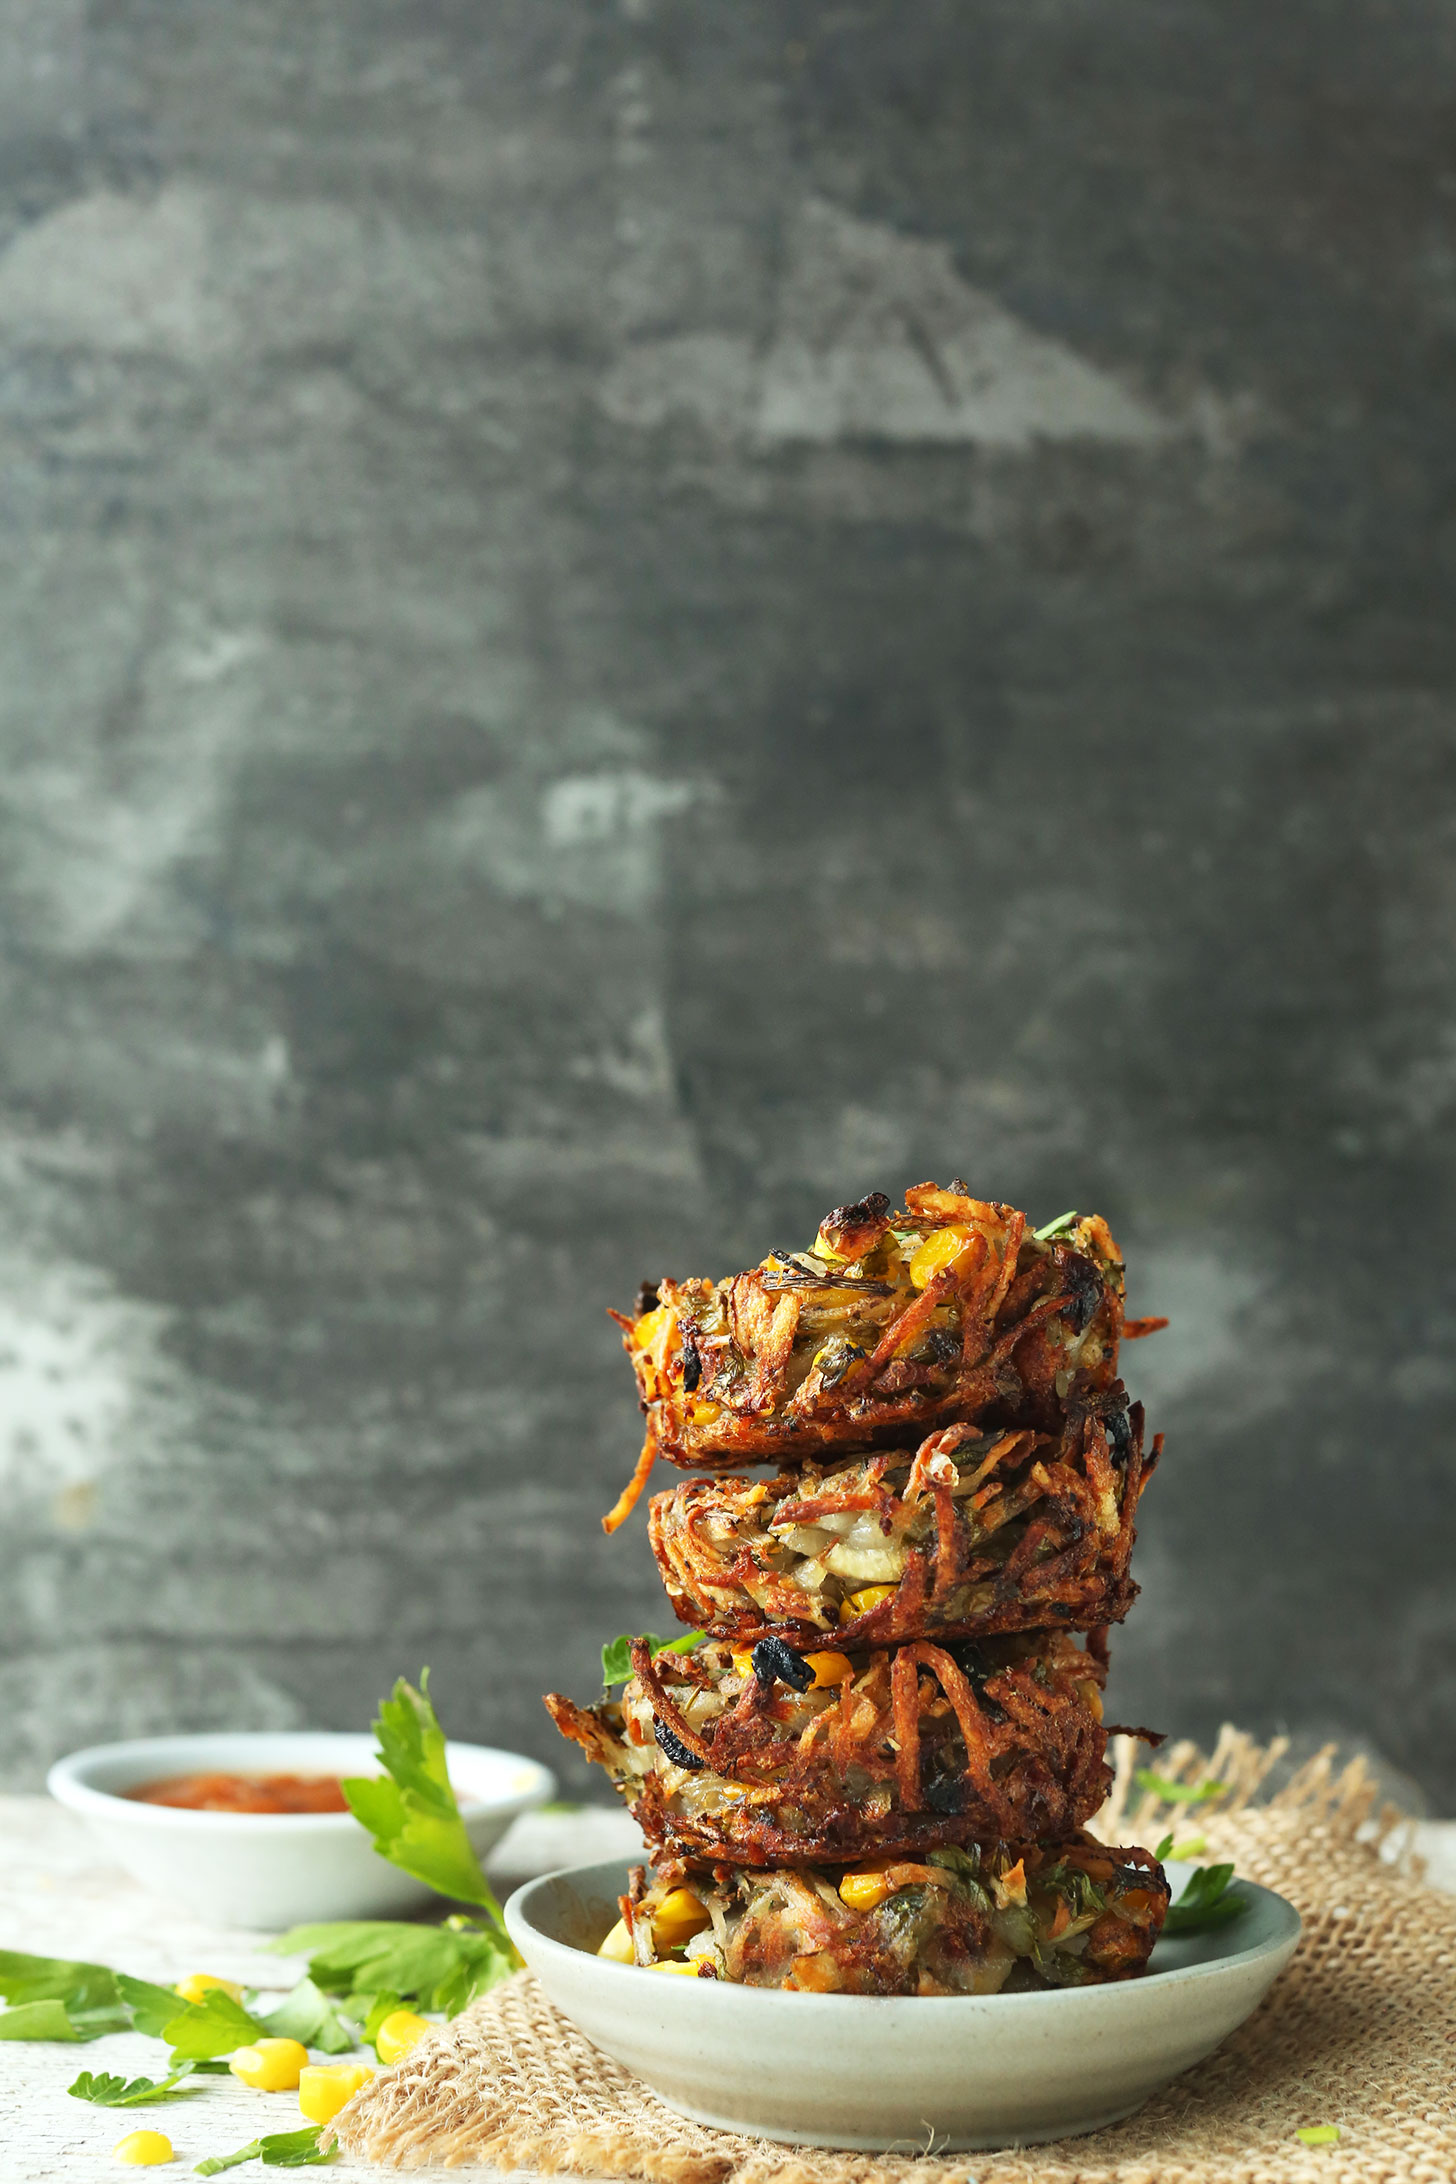 Stack of our Crispy Hash Brown Haystacks for a healthy vegan brunch recipe